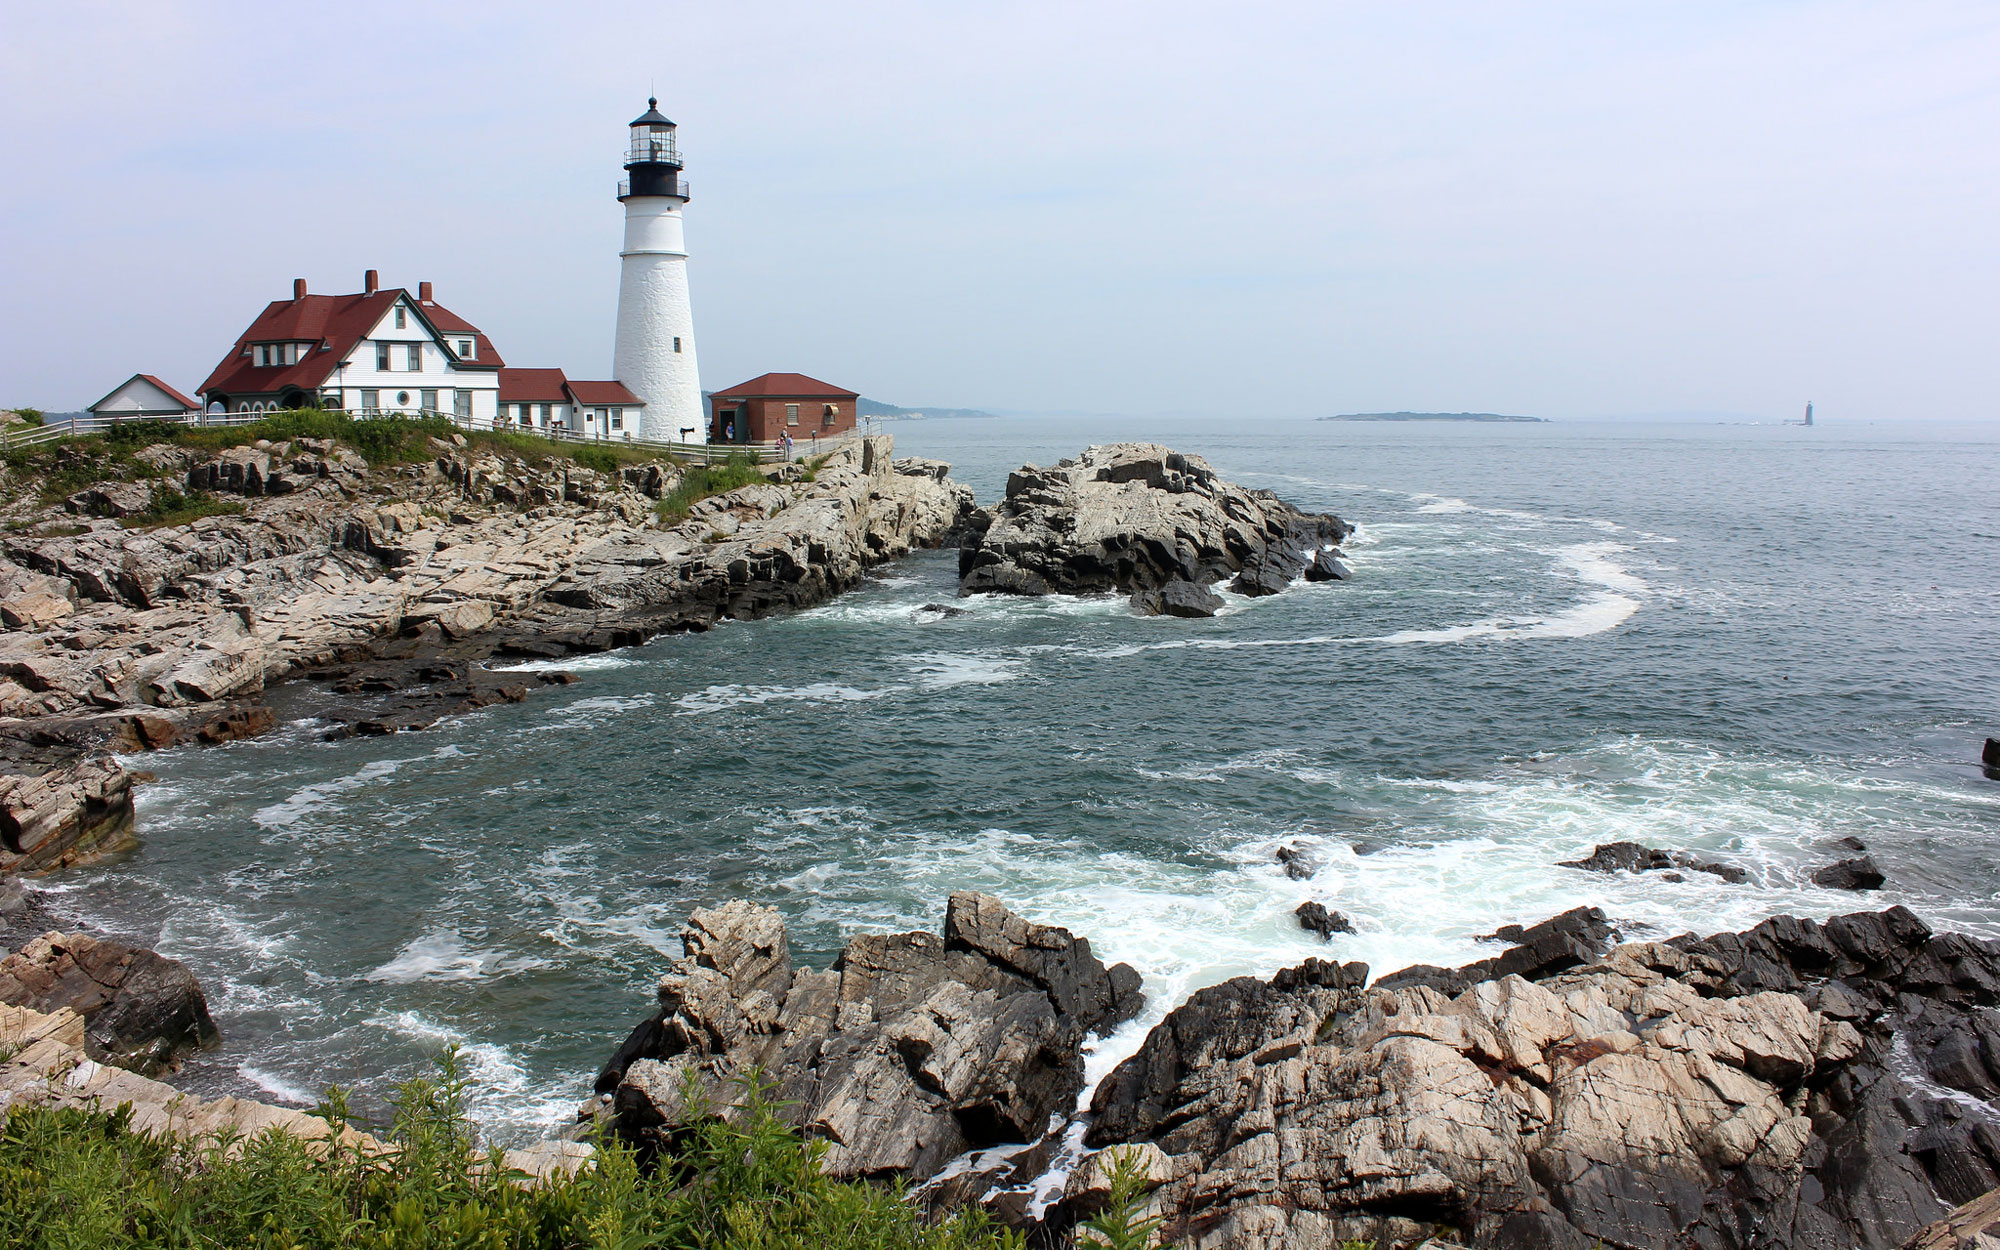 10 a.m.: Portland Head Lighthouse, Cape Elizabeth